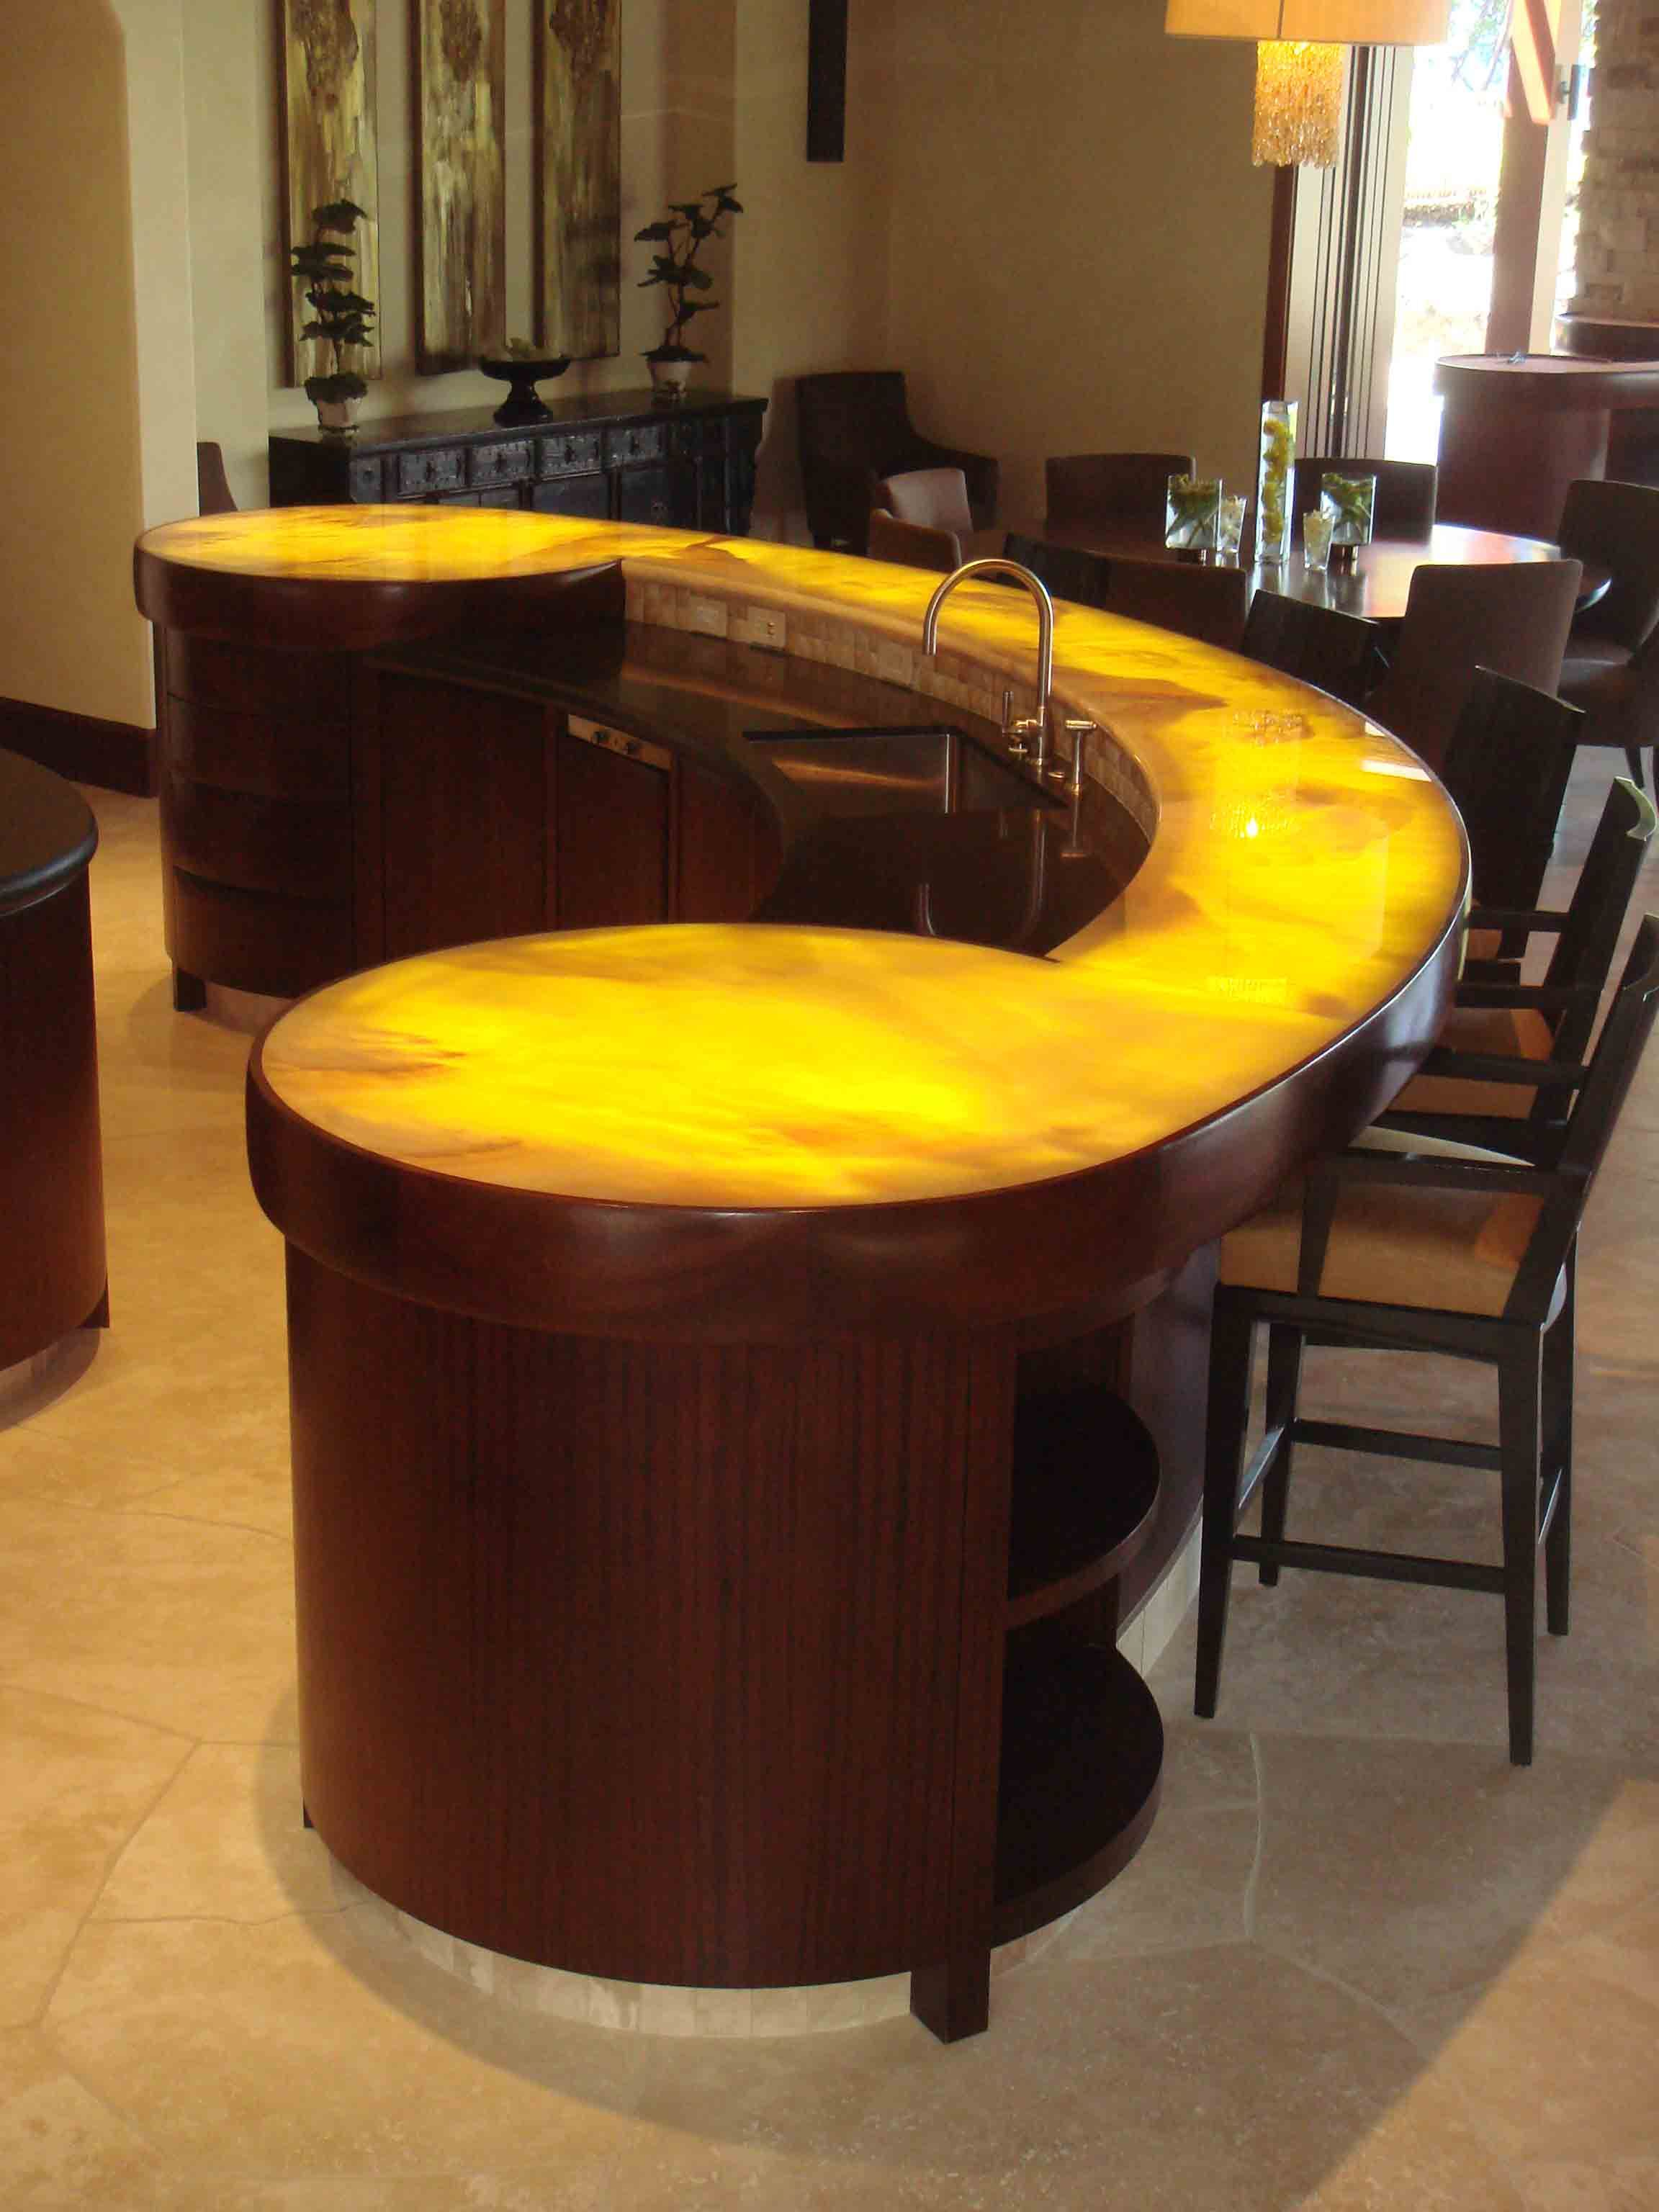 Fetching Modern Bar Counter Designs For Home Design With Dark